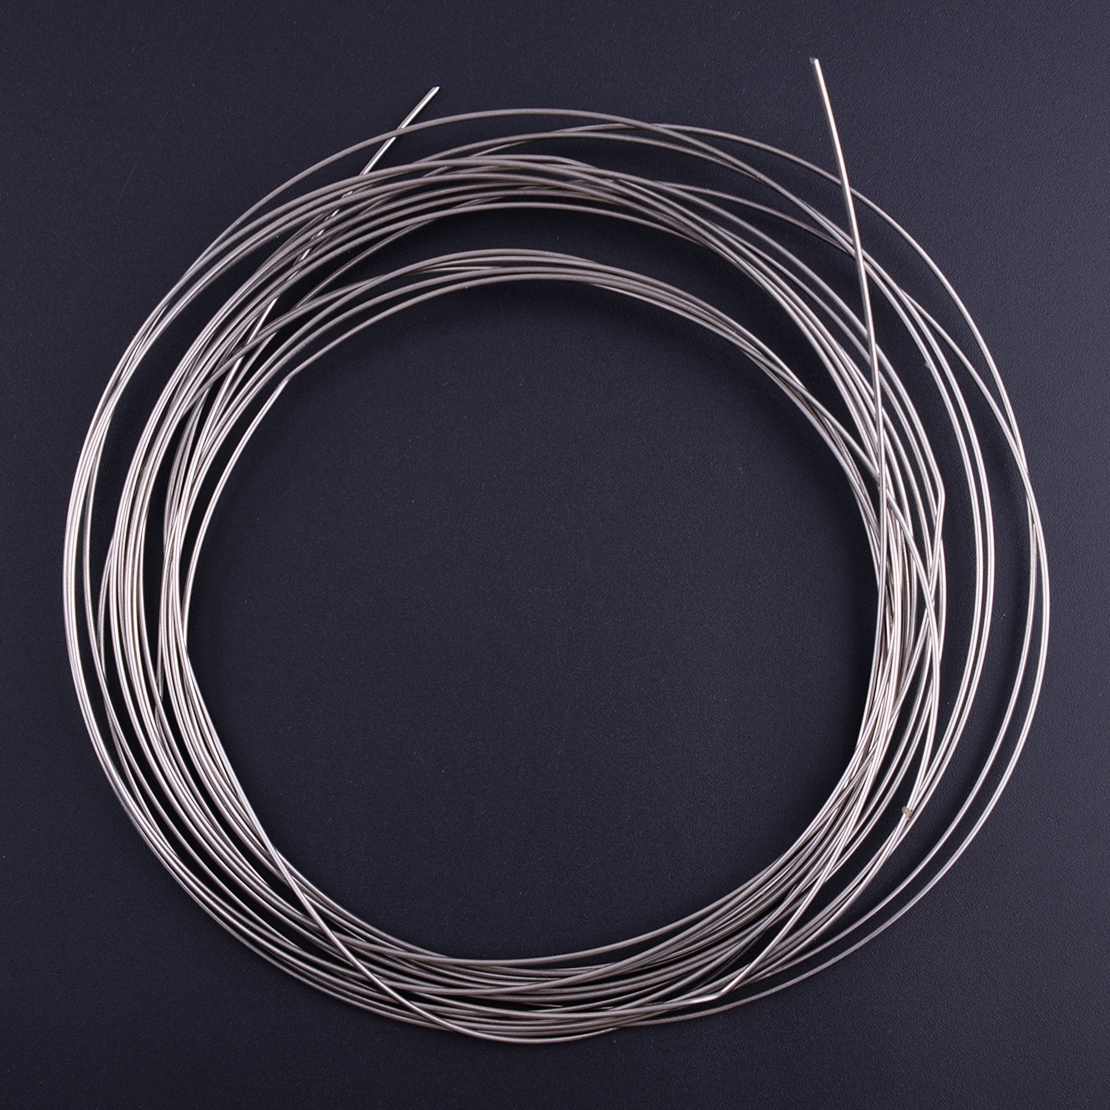 LETAOSK High Quality 5M 1mm Silver 304 Stainless Steel Bright Single Hard Wire Hanging Fastening Craft Decorating